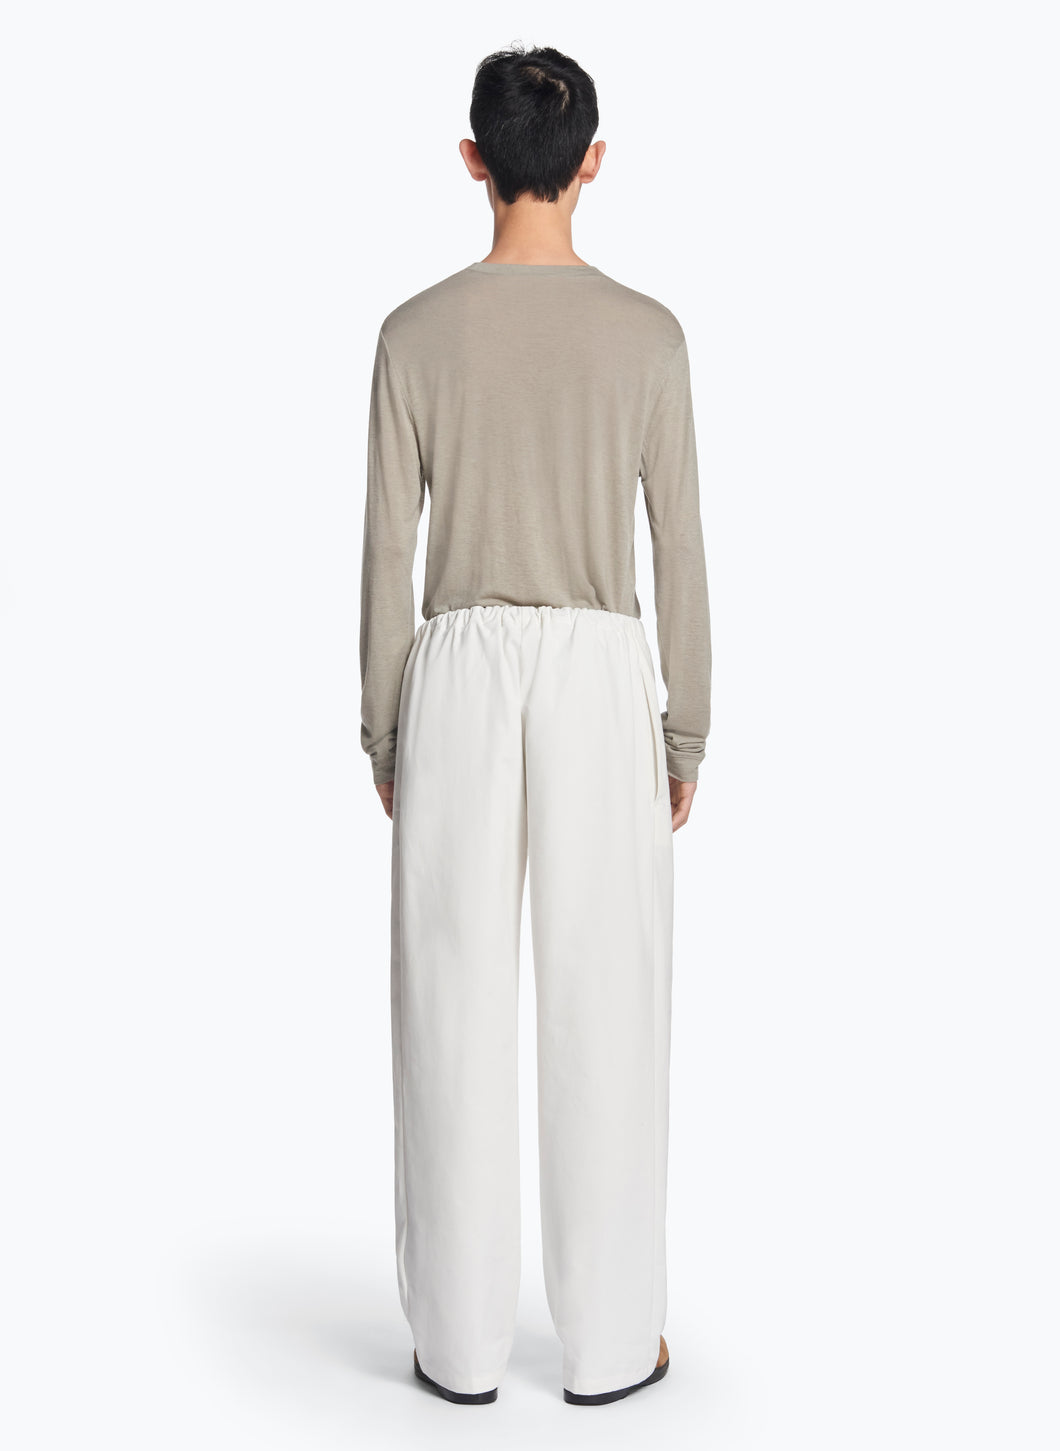 Elastic Waist Pants with Tie in White Gabardine